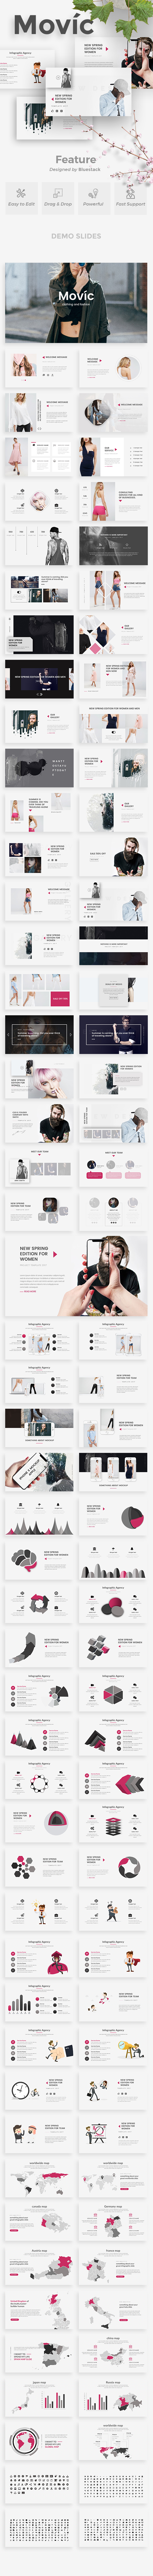 Movic - Clothing and Fashion Powerpoint Template - Creative PowerPoint Templates